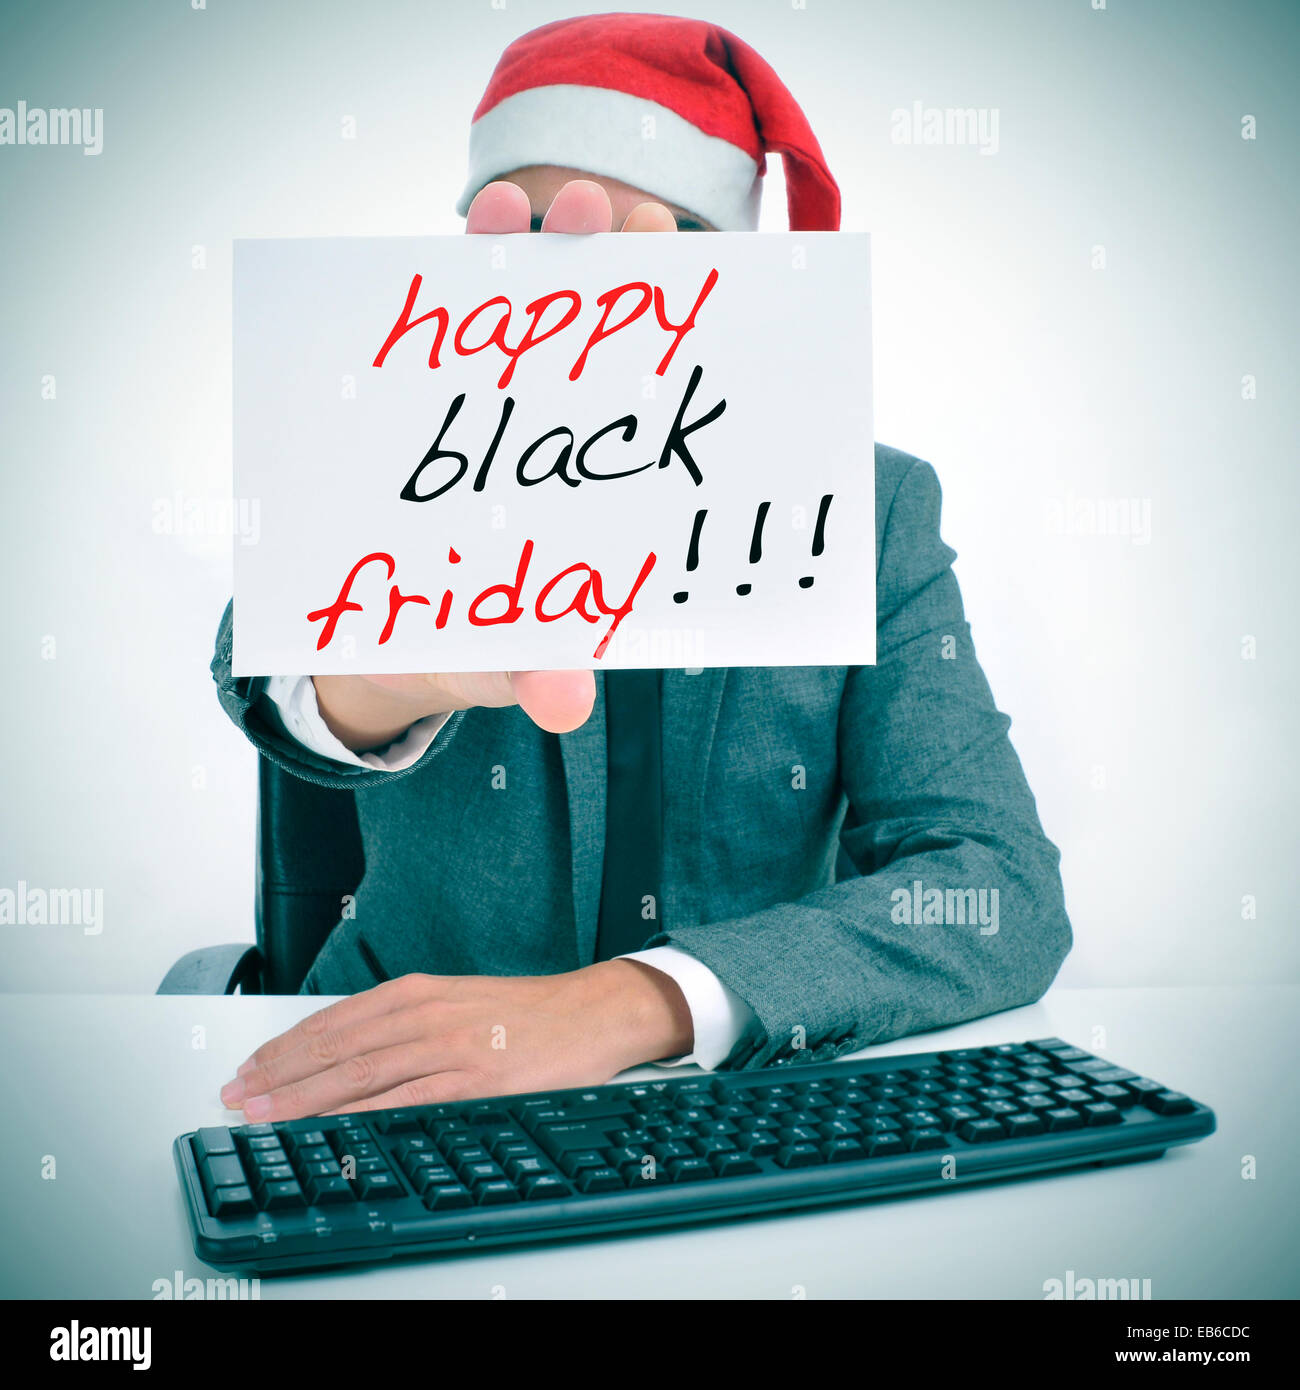 a man with a santa hat in an office desk showing a signboard with the text happy black friday written in it - Stock Image